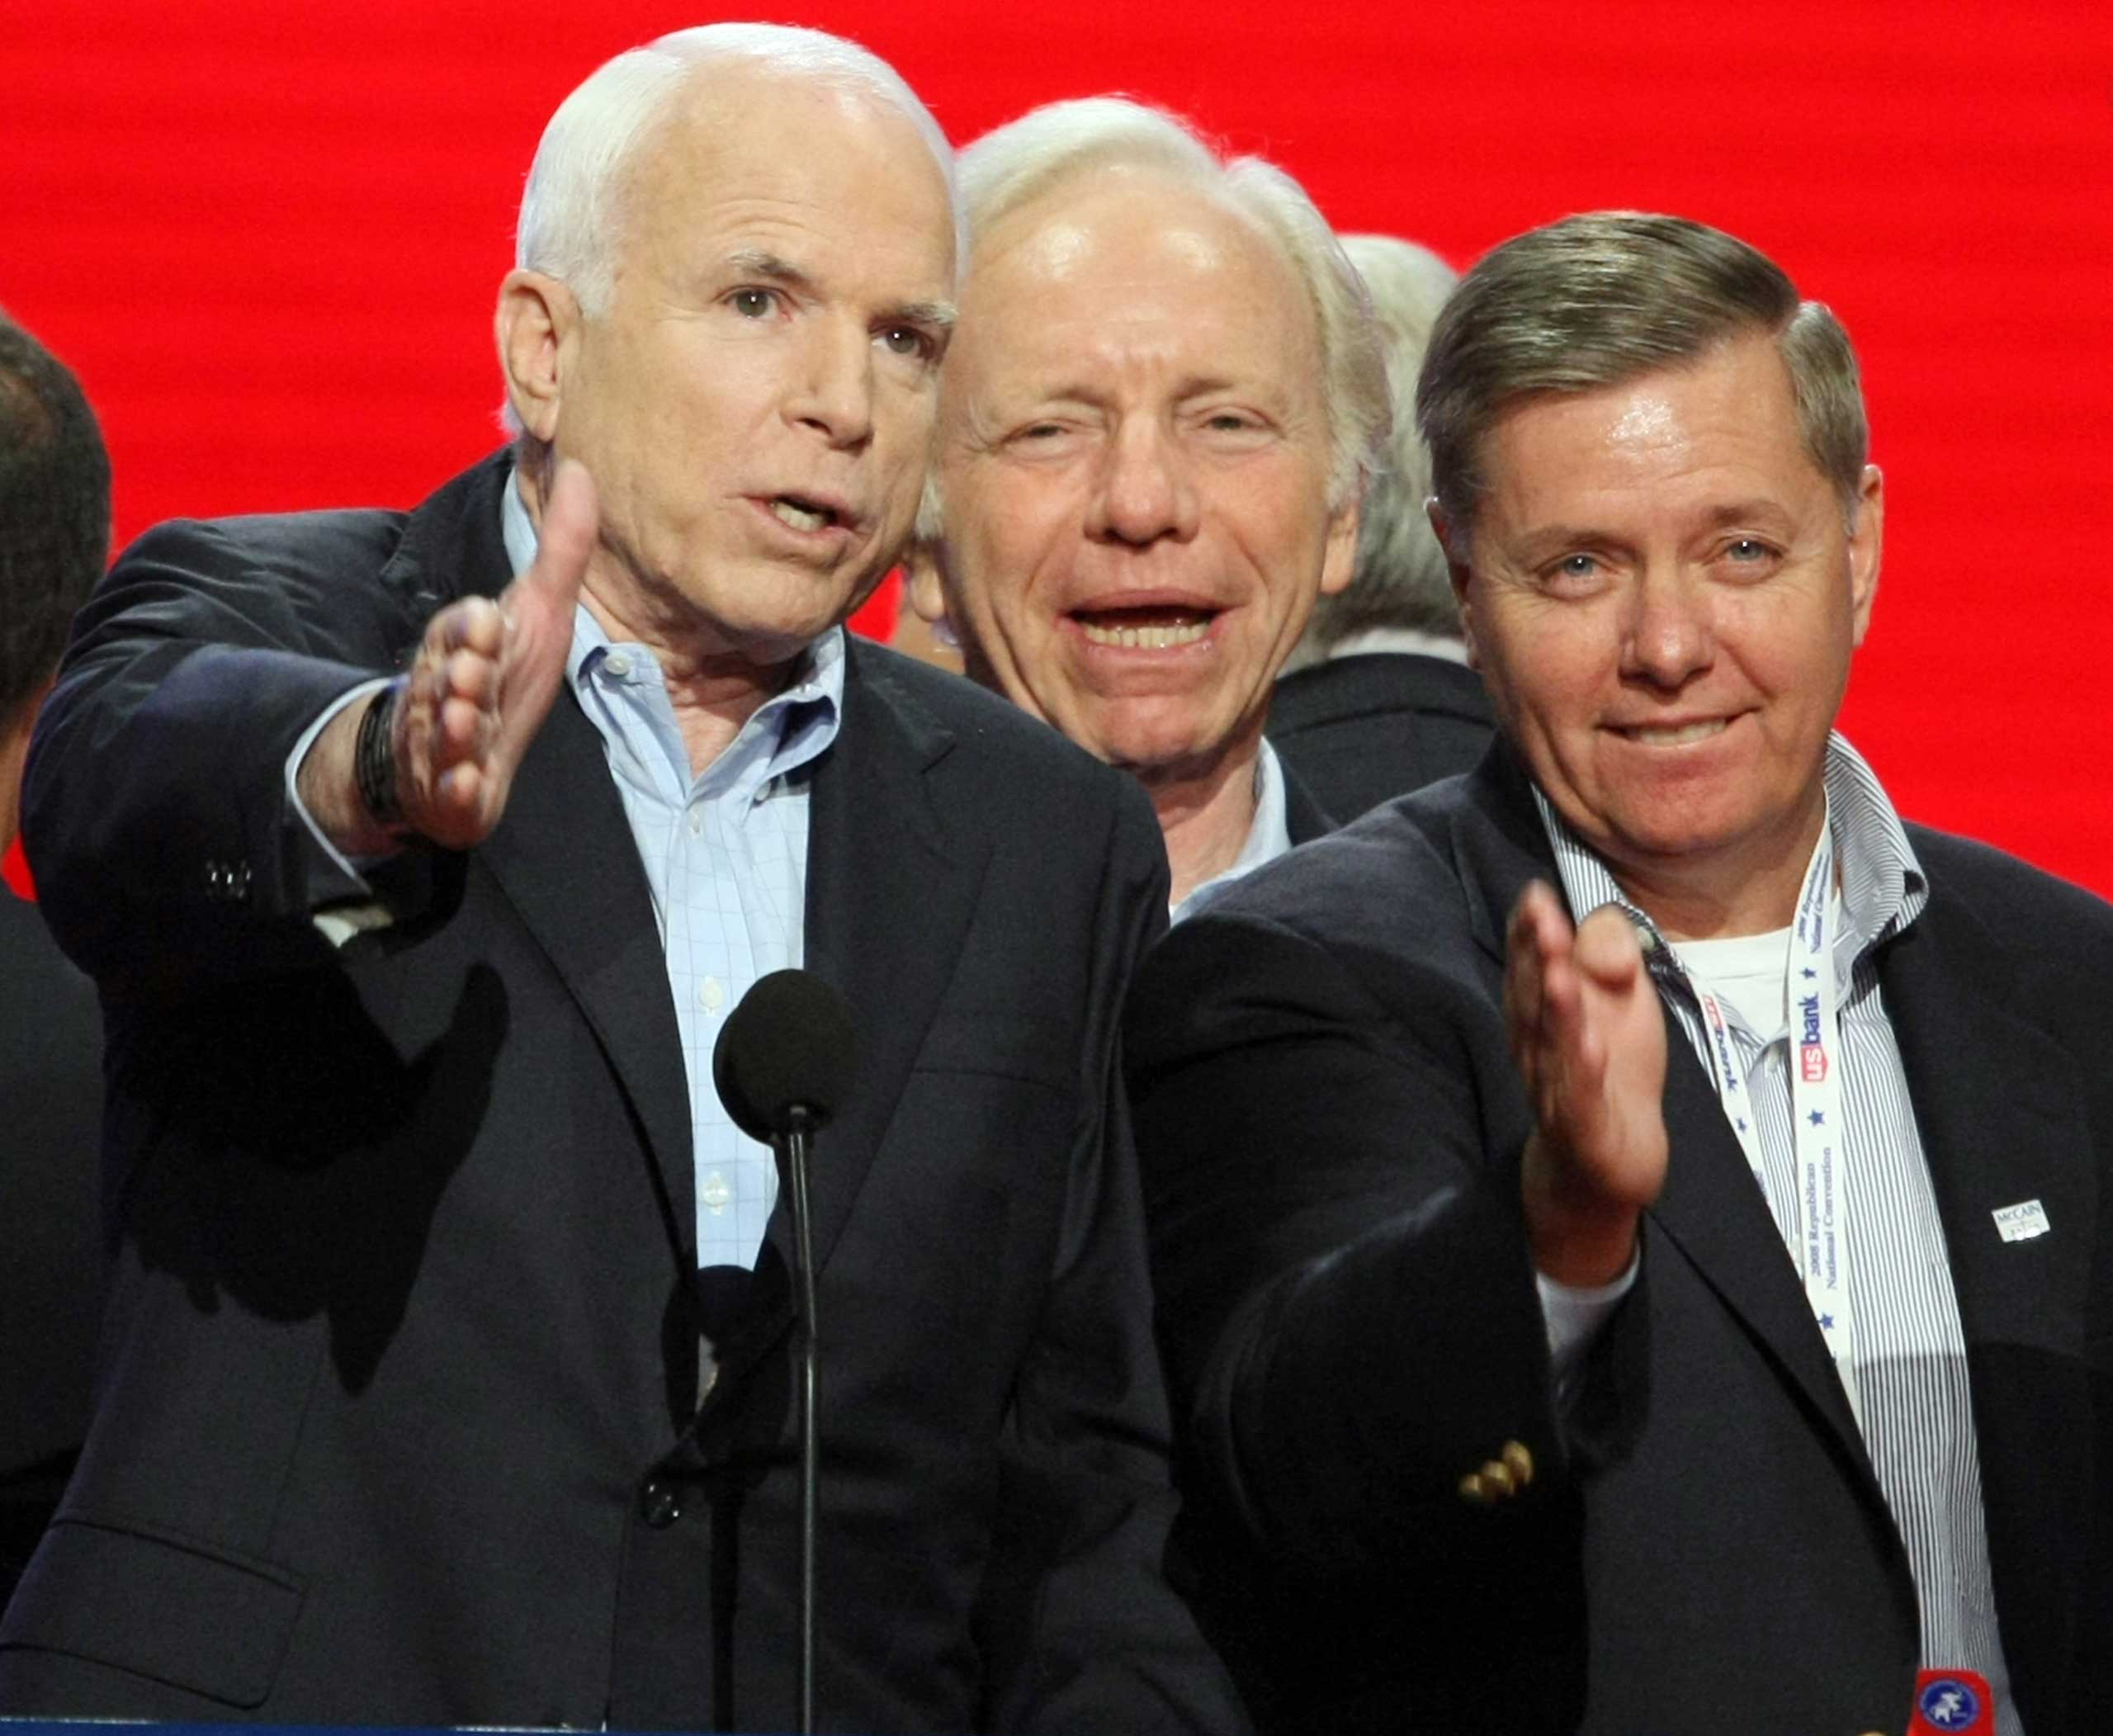 Though they have different temperaments, the three Senators have an easygoing rapport that's clear when they are together, as in this 2008 walk-through of the GOP national convention stage.